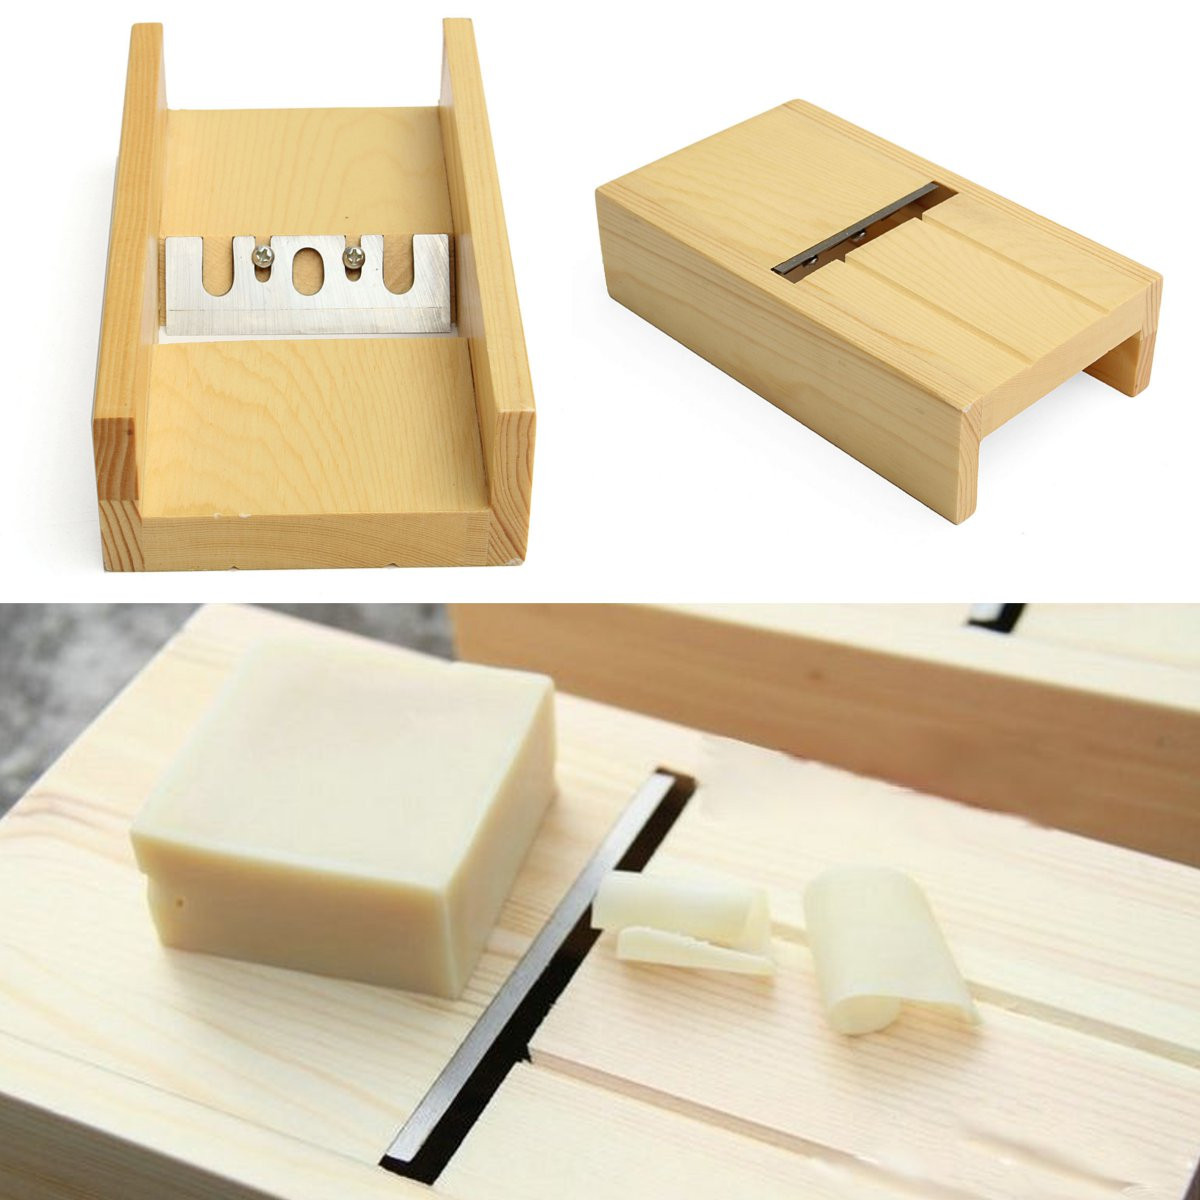 Wooden Beveler Planer Sharped Blade Handmade Soap Candle Loaf Mold Cutter Craft Making Tool Soap Kits Cutting Tools